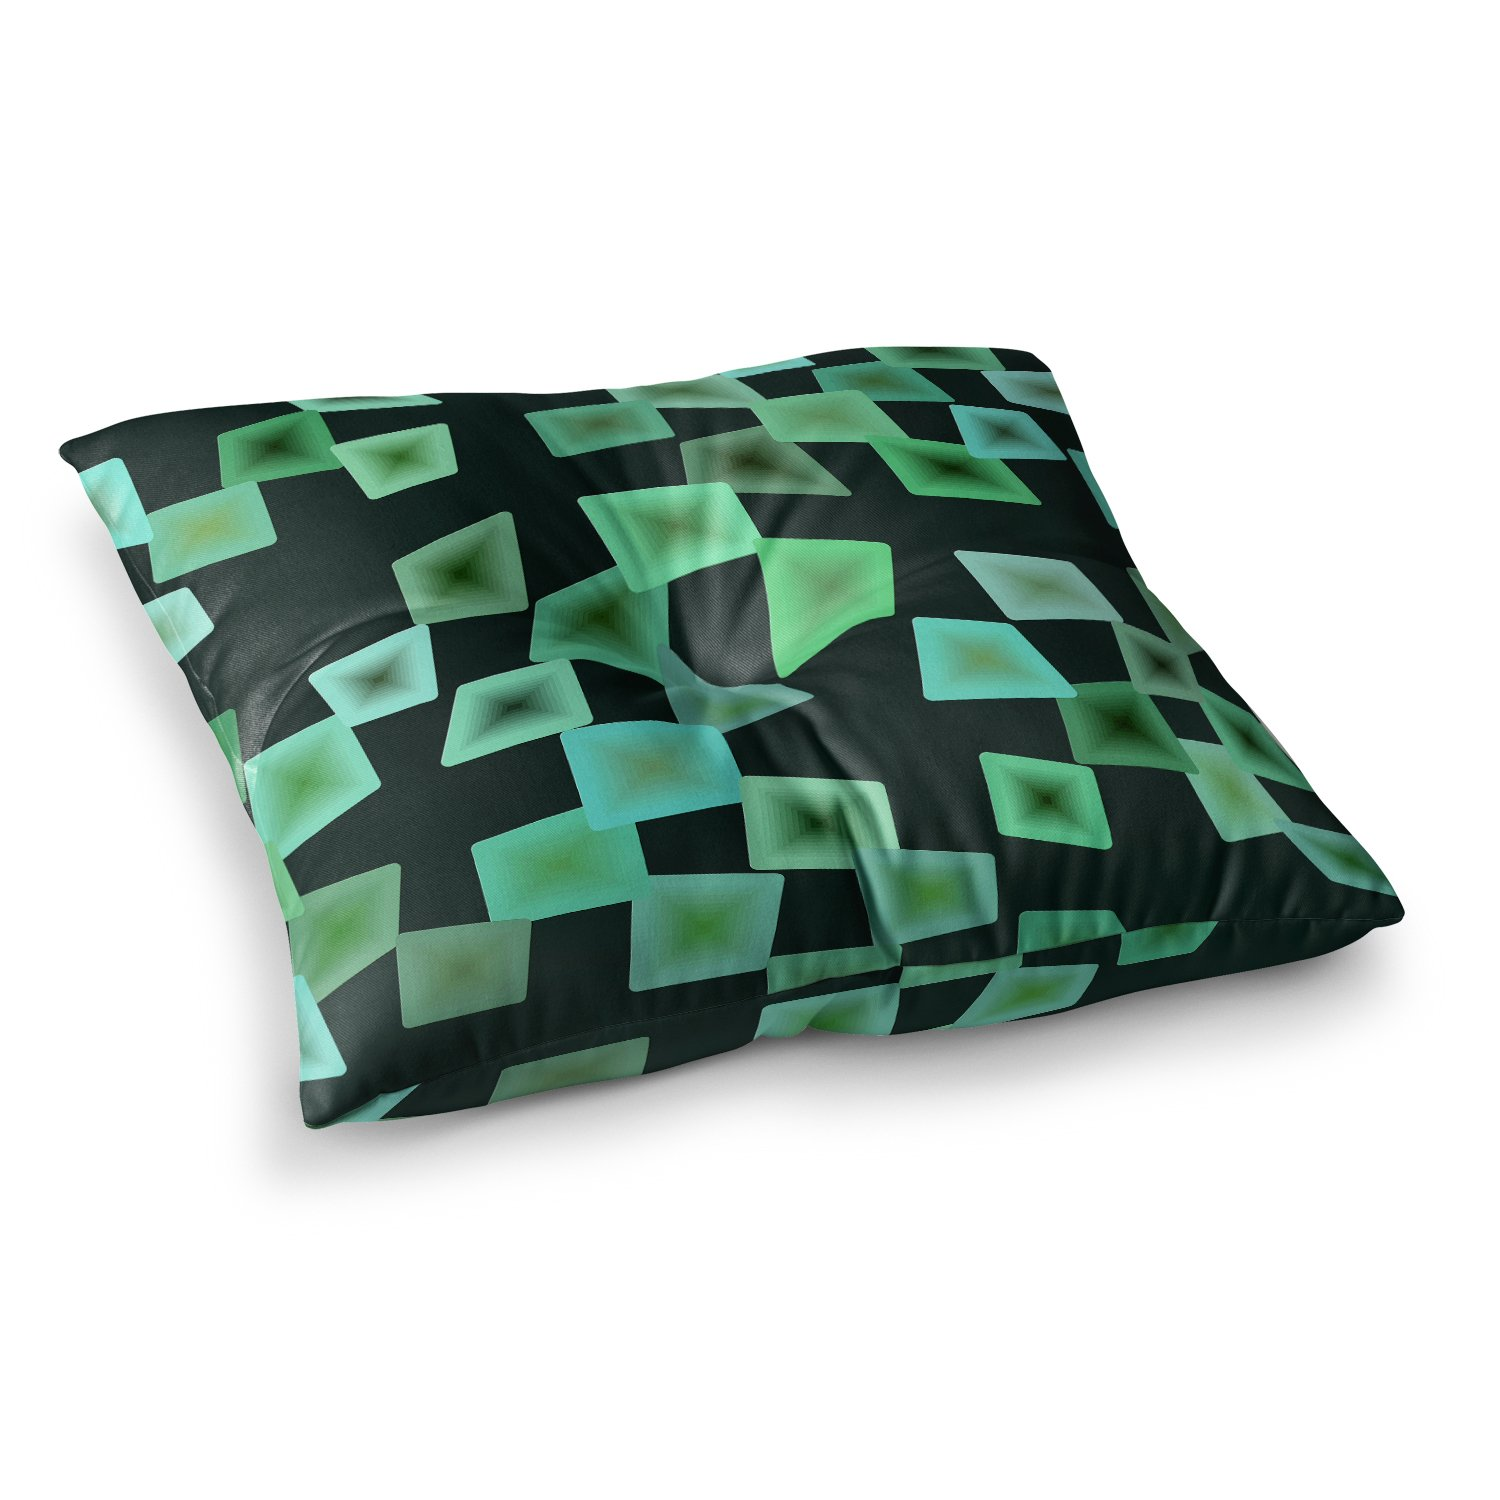 Kess InHouse Mimulux Patricia No Seaglass On The Shore Green Digital, 23' x 23' Square Floor Pillow 23 x 23 Square Floor Pillow MN2002ASF01